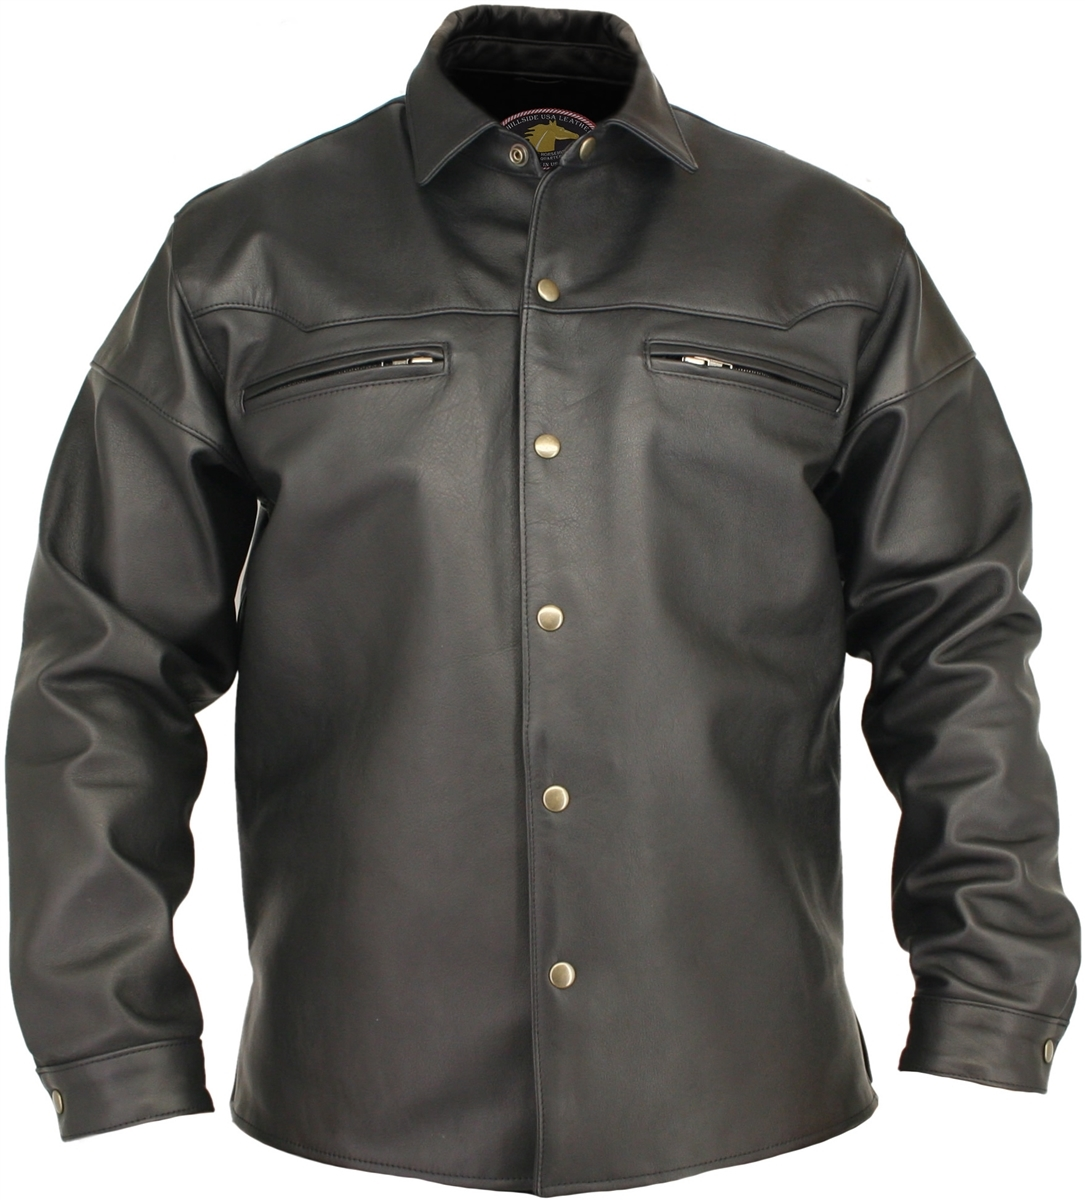 Pure style and sophistication aptly describes the HORSEHIDE COLLECTION. There's nothing like the feel of a genuine Horsehide shirt, especially one with as much attitude and quality as this one. Crafted with 1.2-1.4mm Genuine Front Quarter Horsehide. Dual